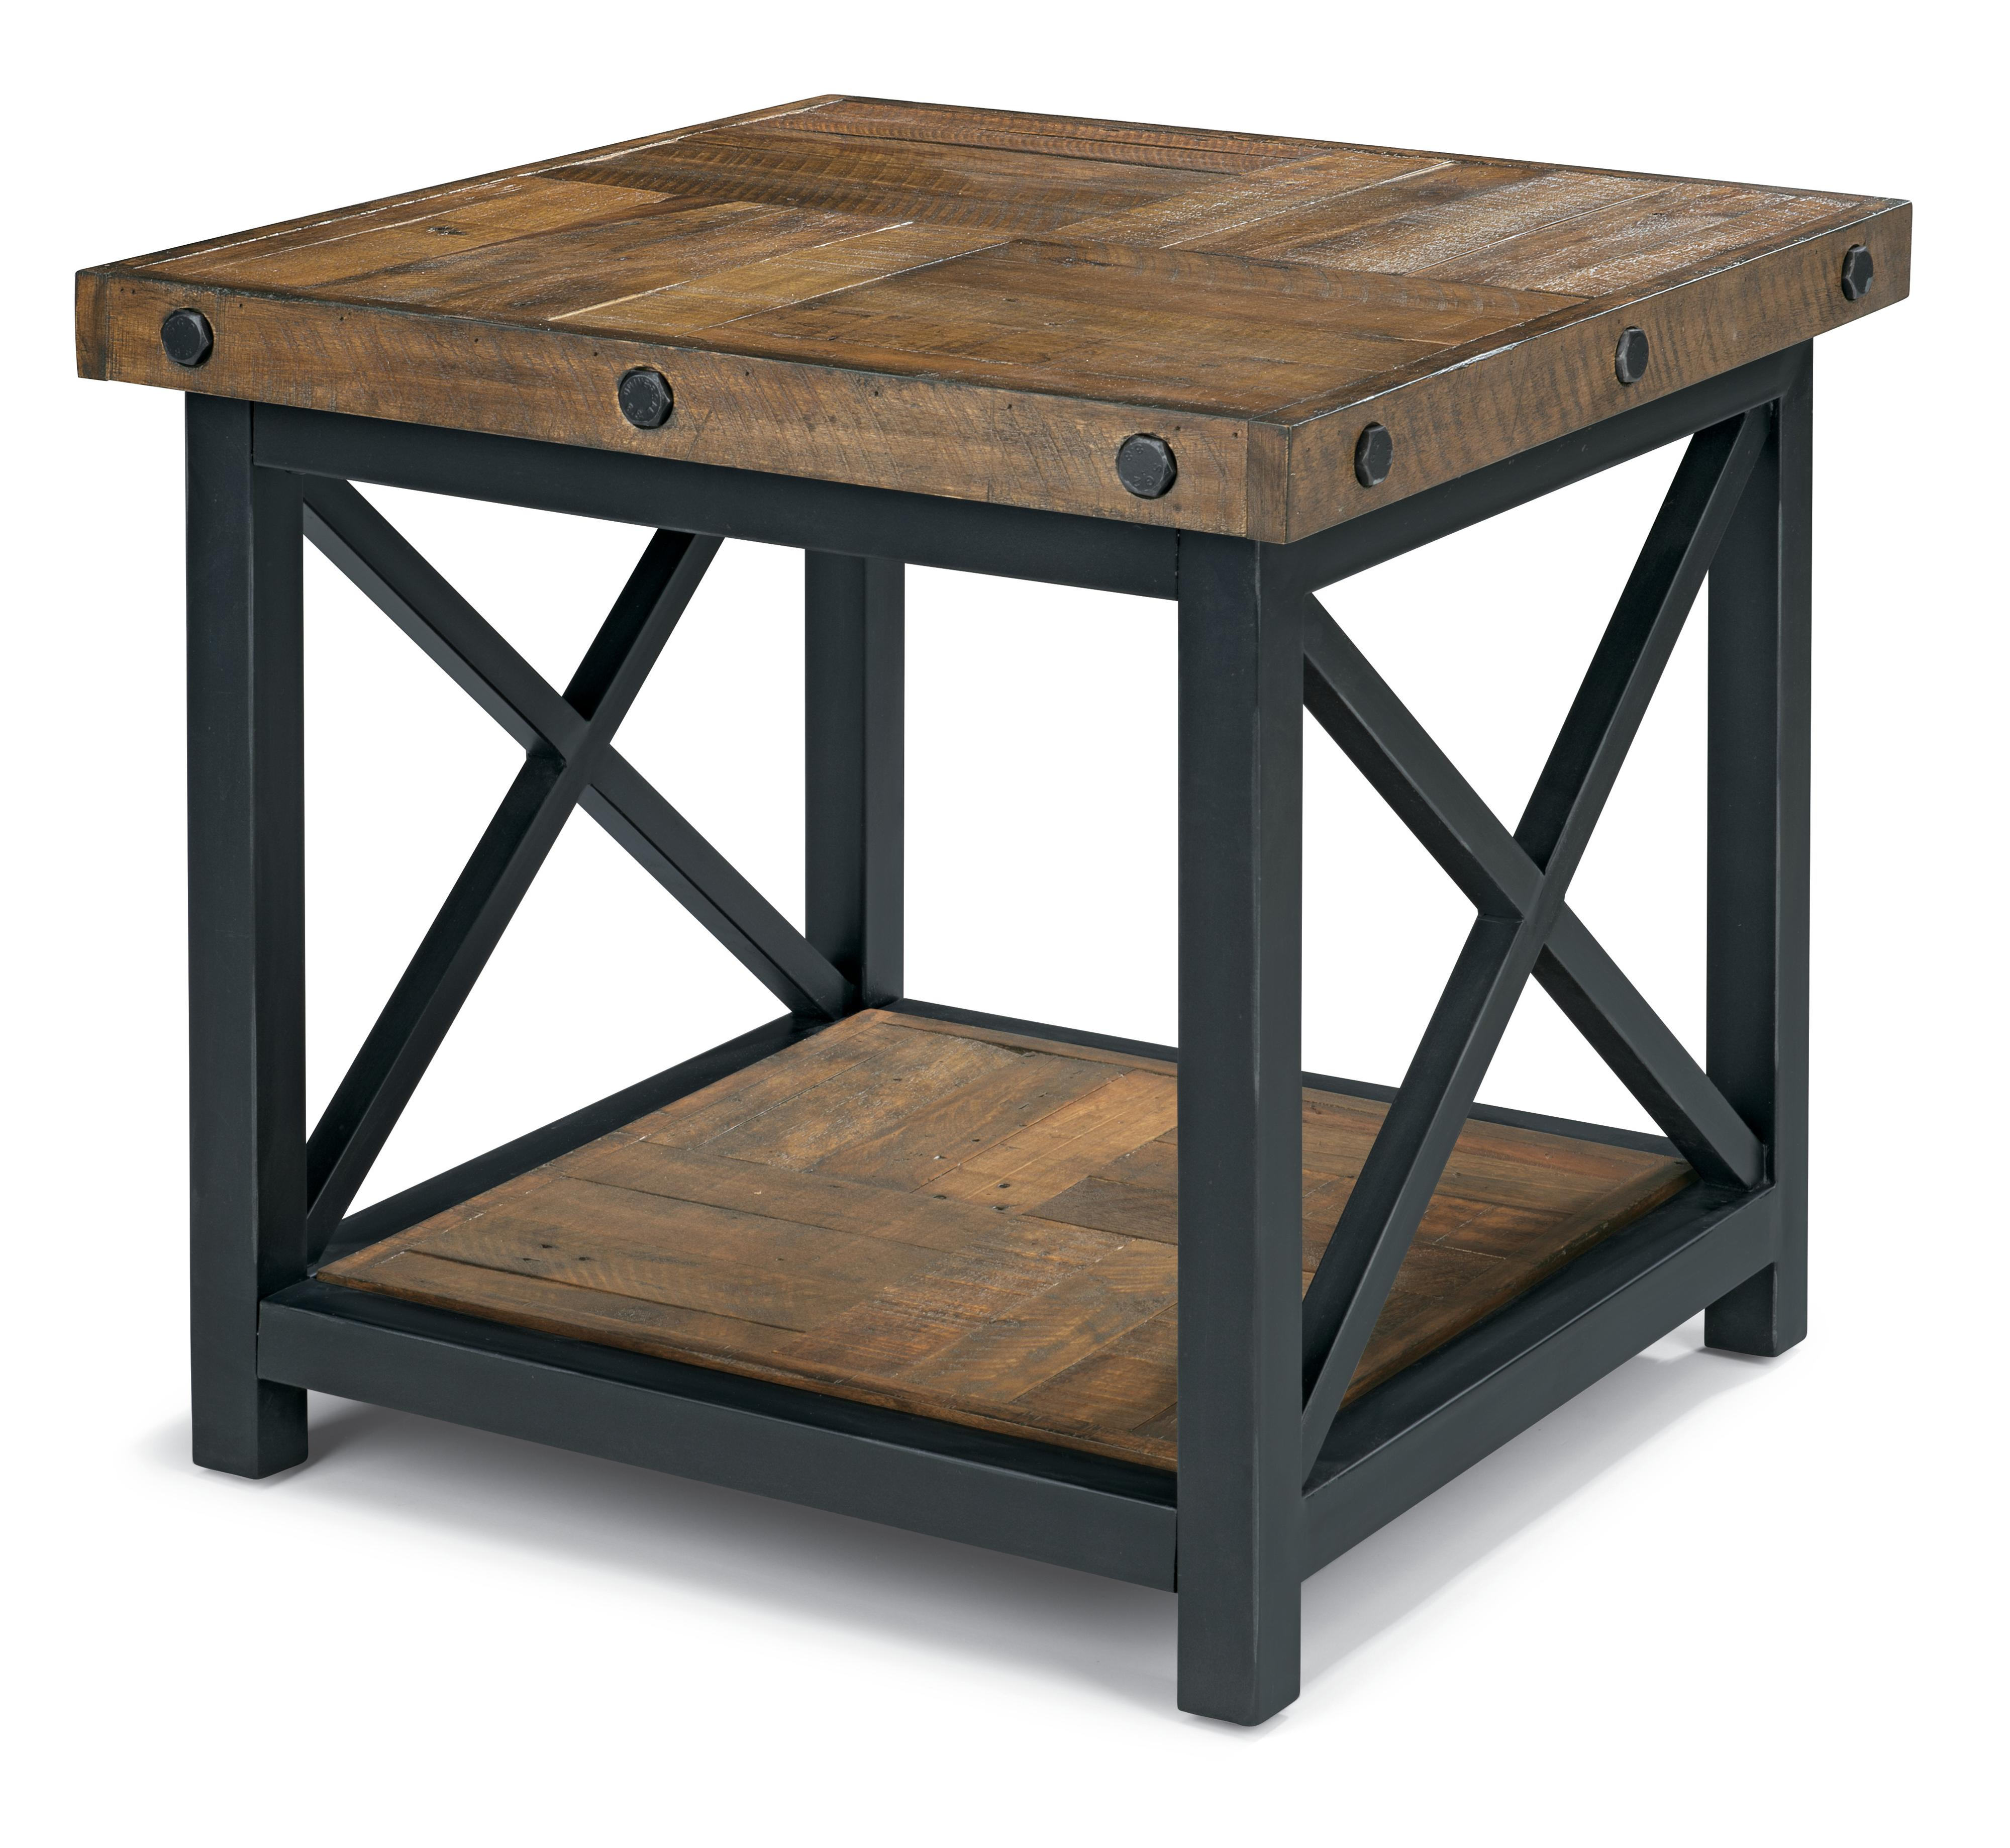 square end table with wood plank top flexsteel wolf gray accent gallerie coupon painted coffee ideas black and grey marble leick corner computer desk oval glass set seaside decor